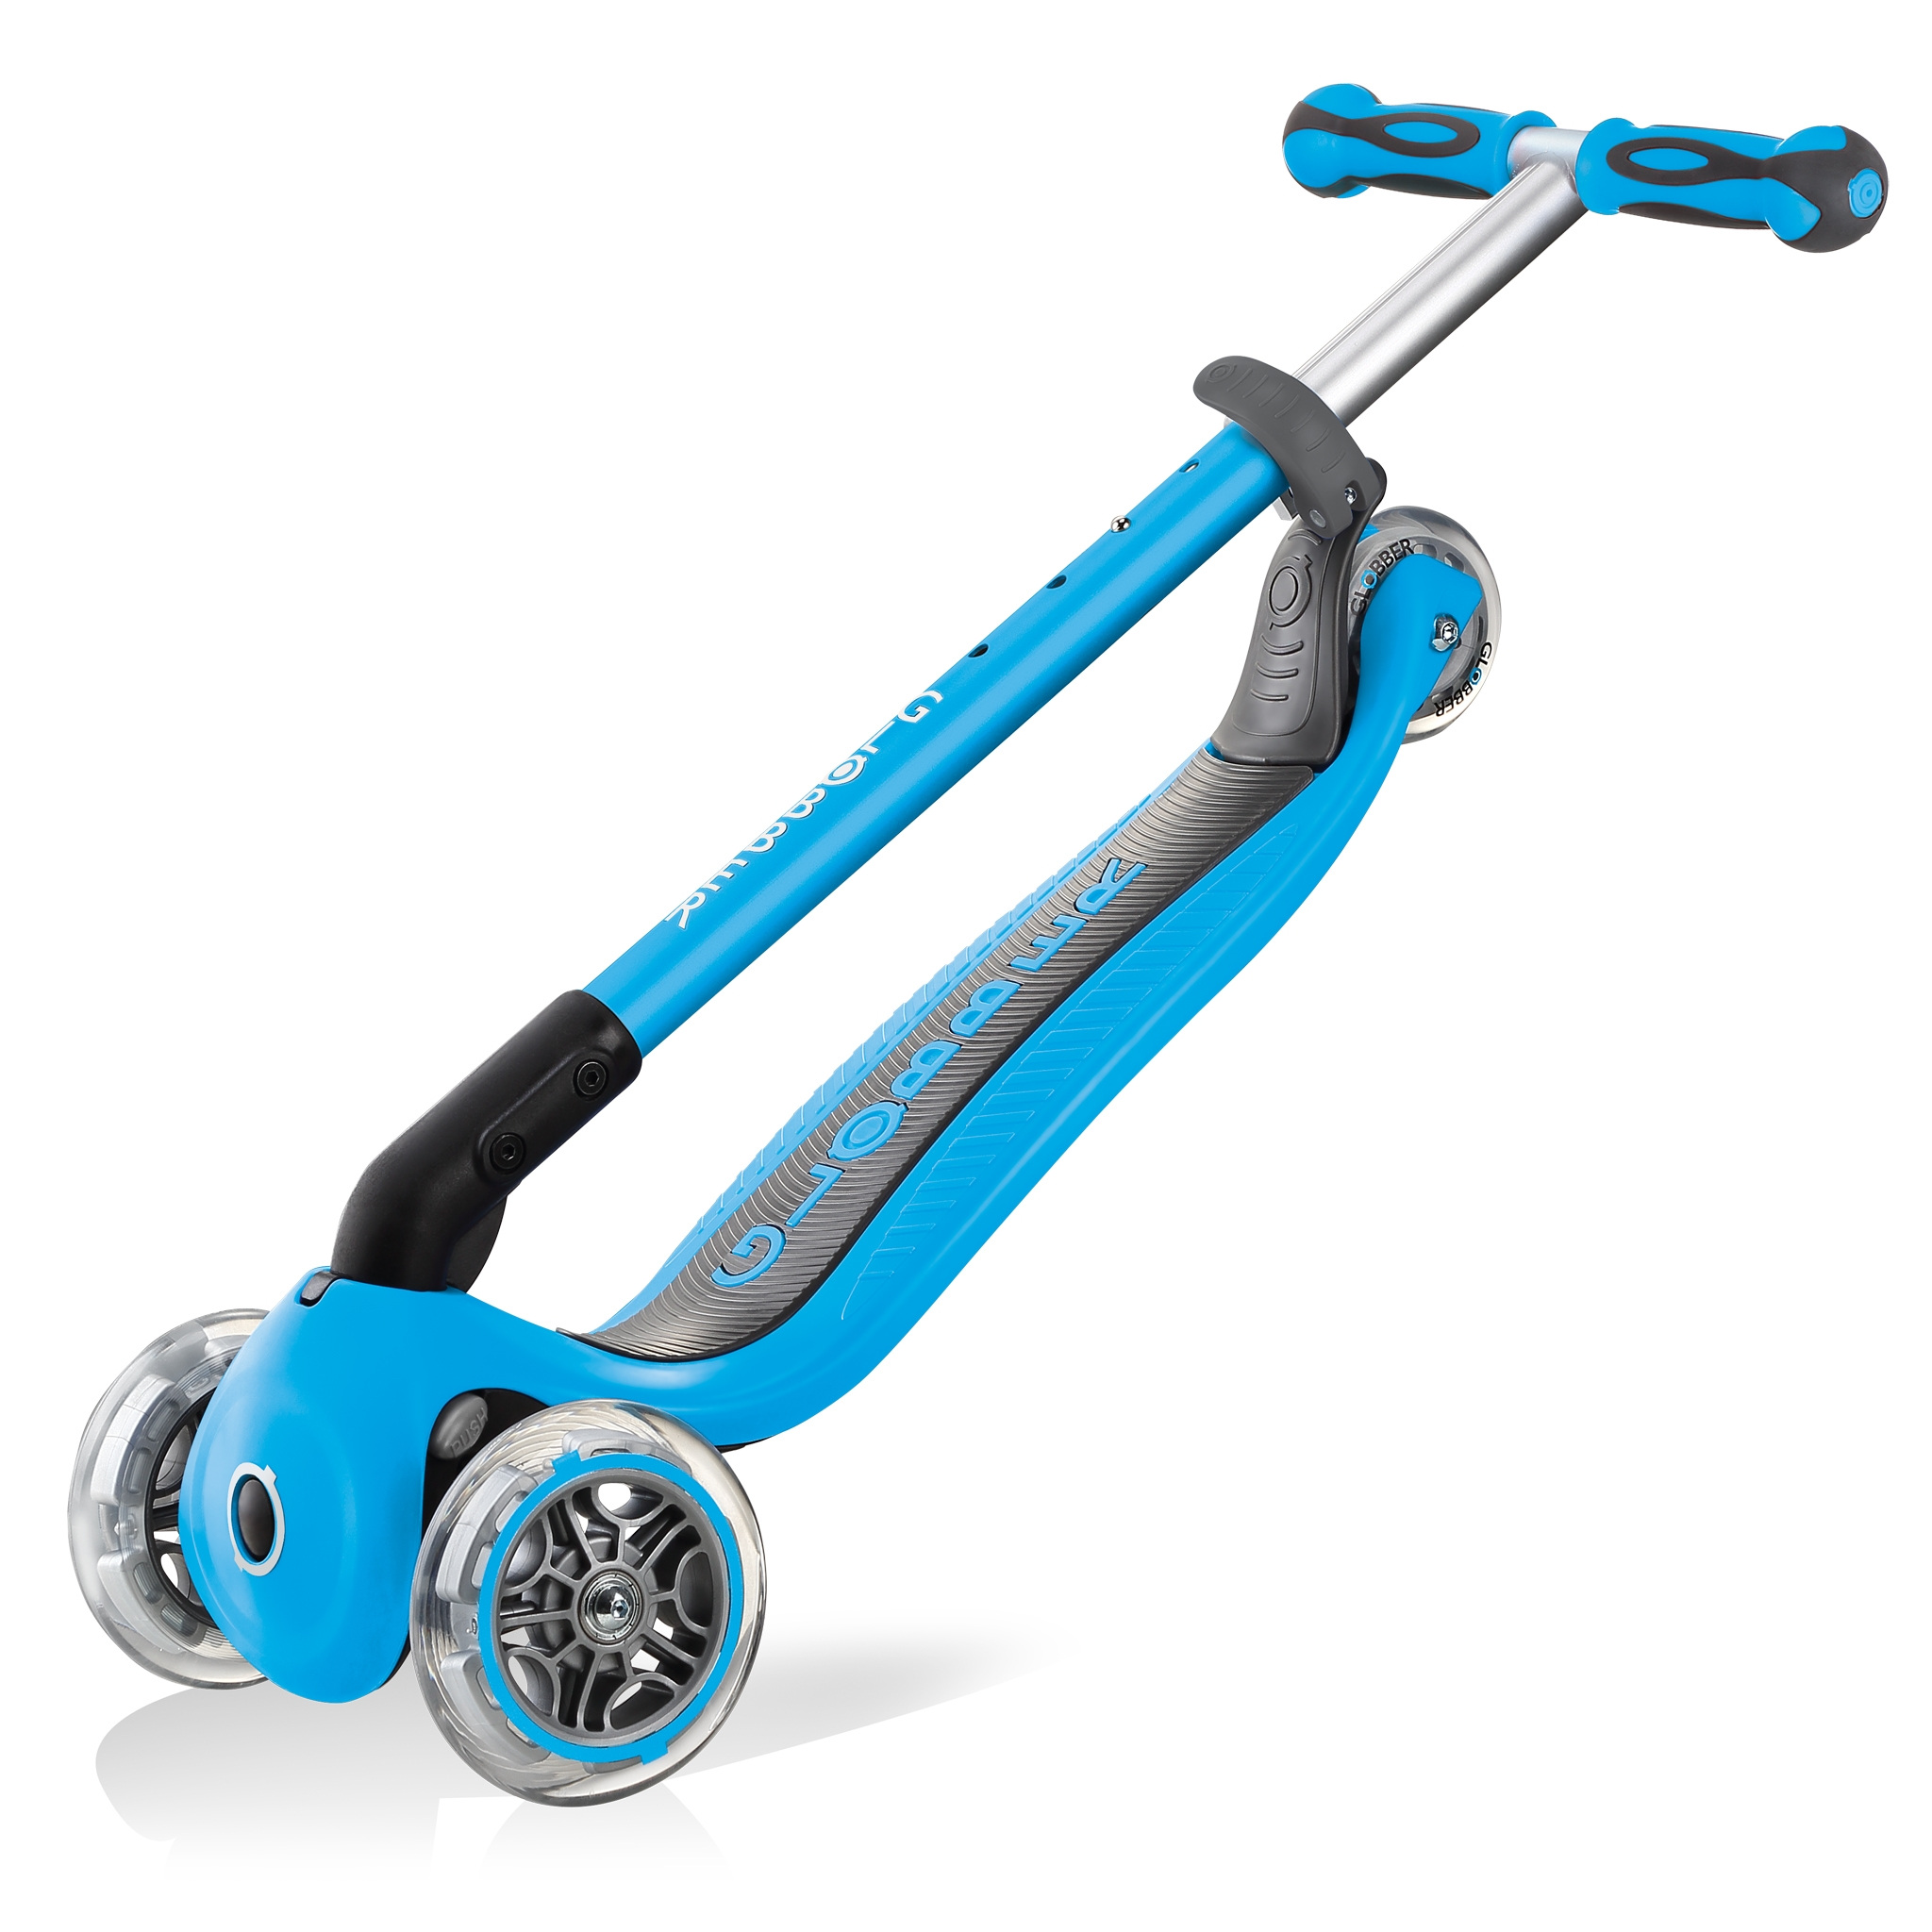 GO-UP-DELUXE-ride-on-walking-bike-scooter-trolley-mode-compatible-sky-blue 5